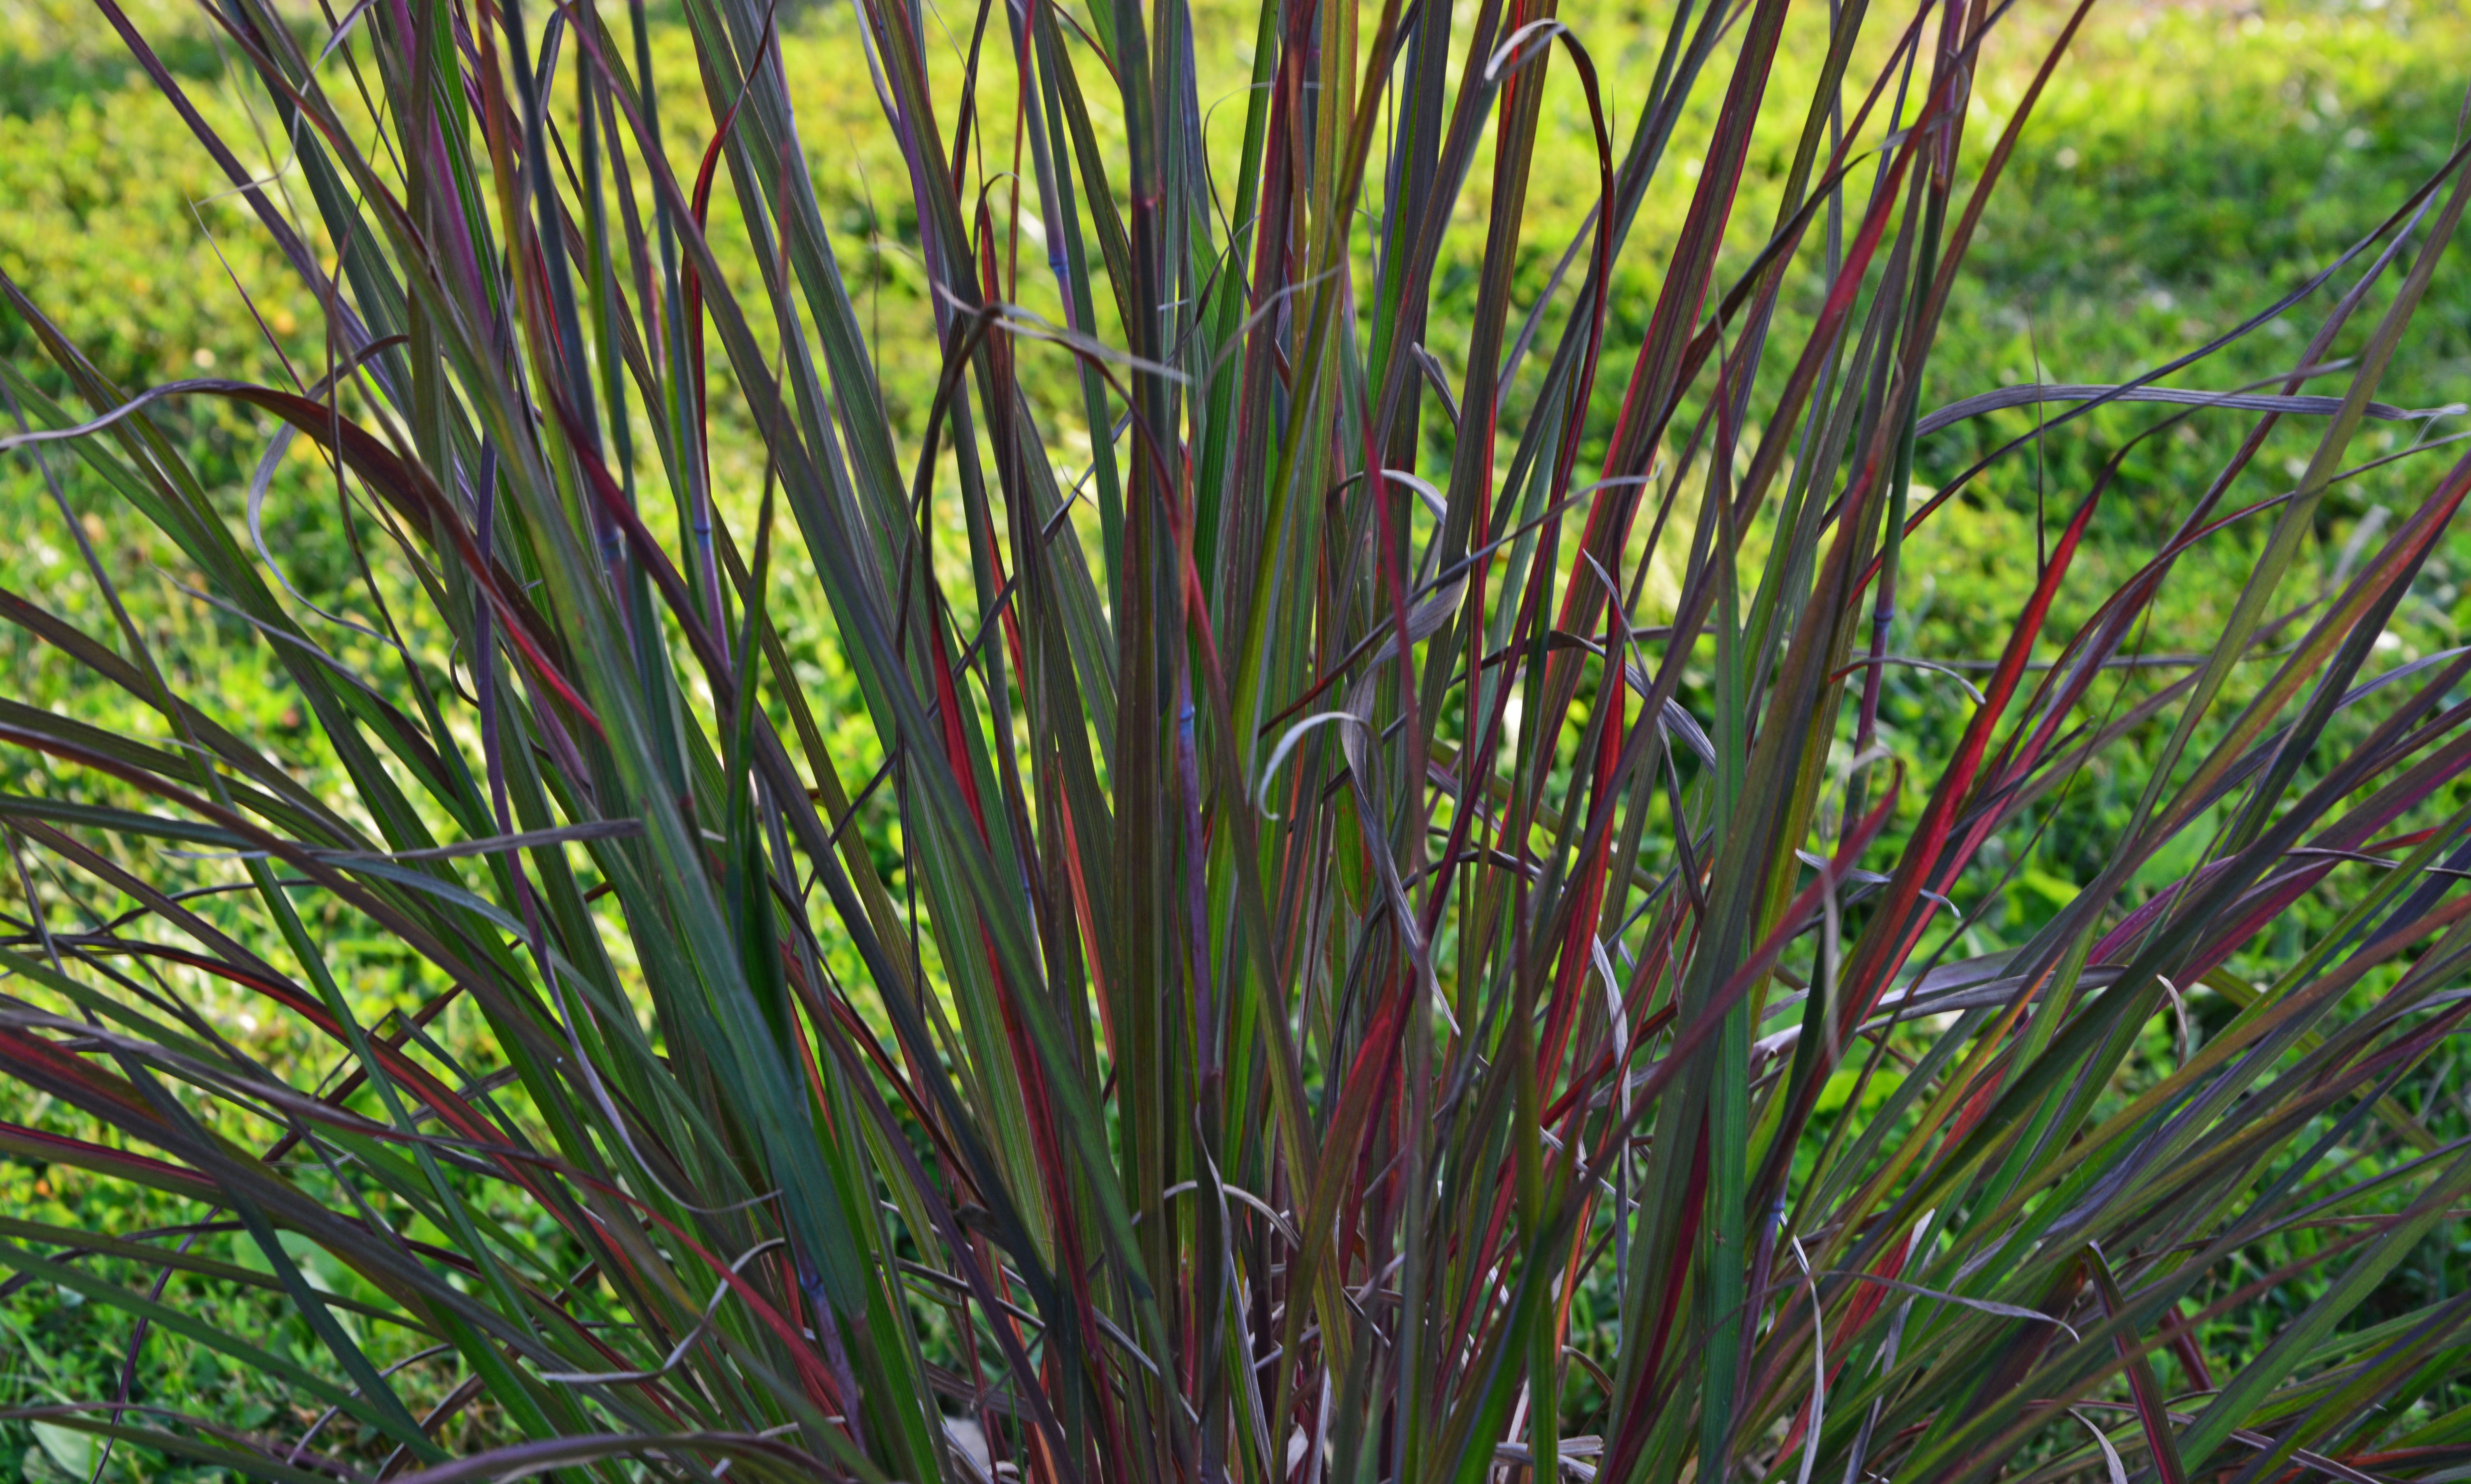 Ornamental grass update an obsessive neurotic gardener for Small red ornamental grass